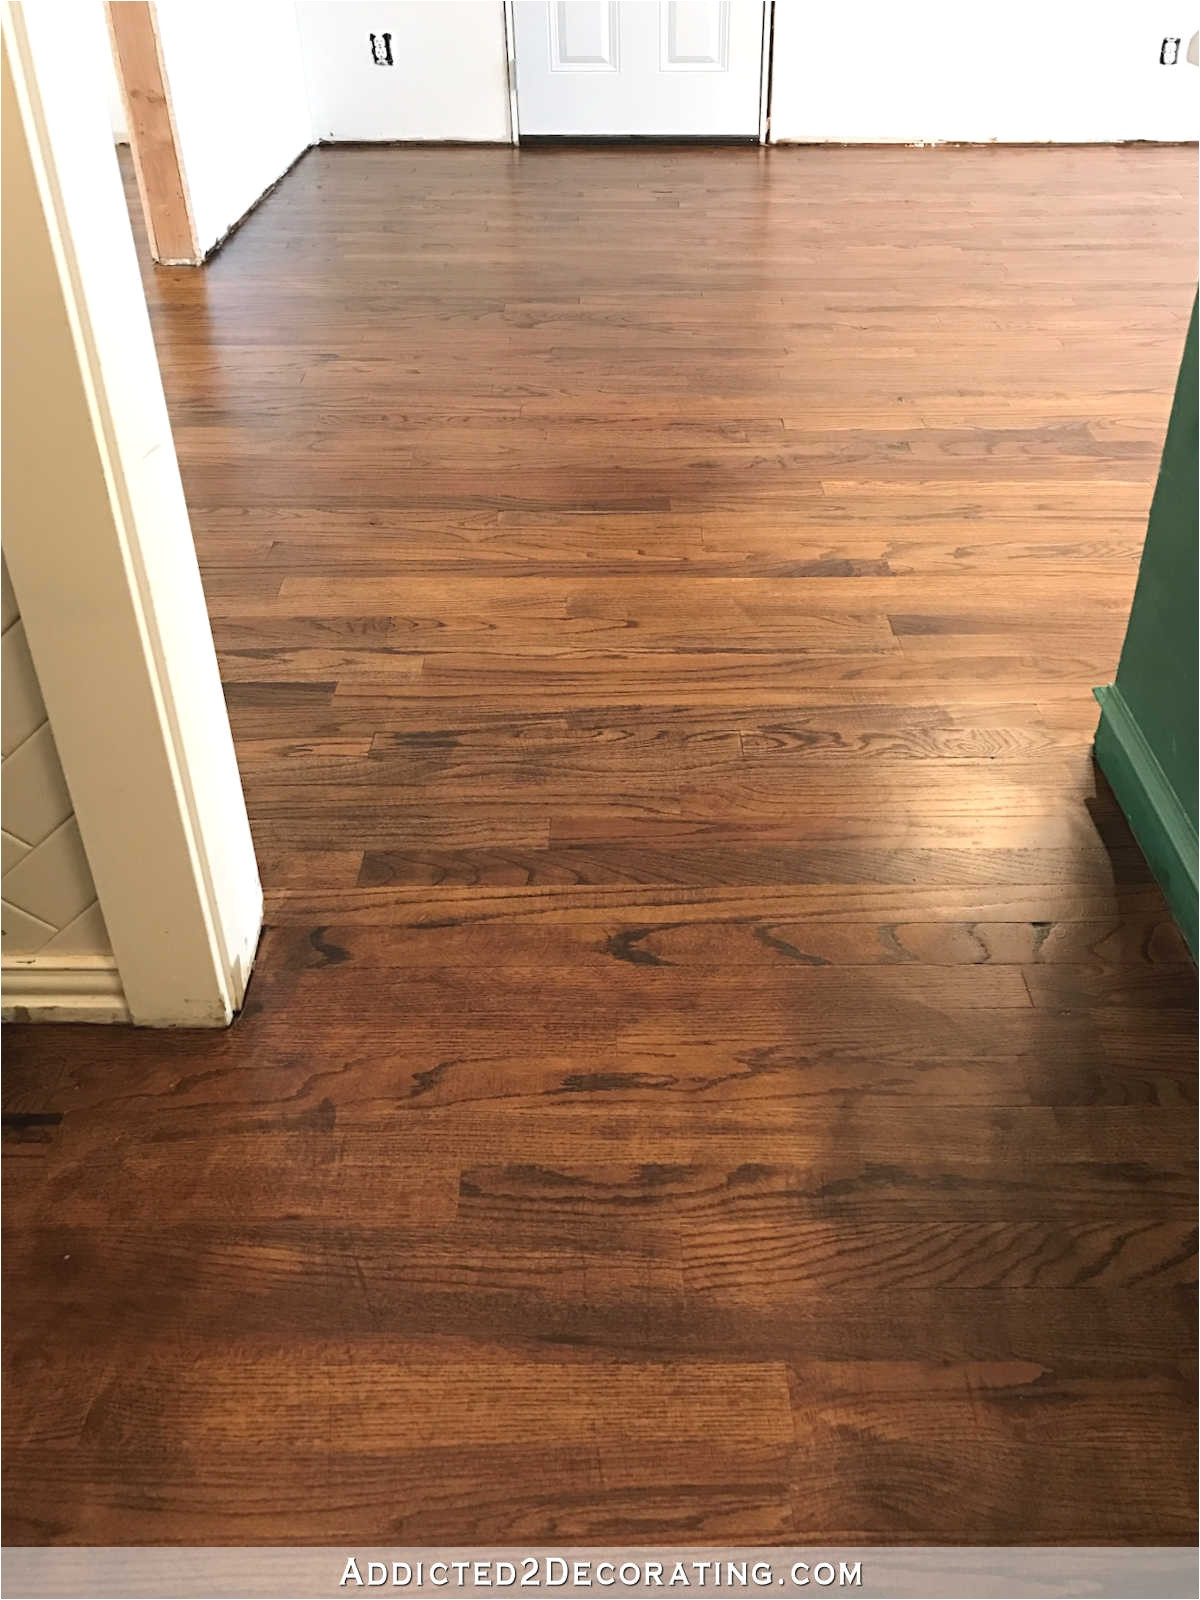 Re Sanding Hardwood Floors Of Dog Shoes Hardwood Floors Dog Pee Hardwood Floors Gorgeous My Newly with Dog Shoes Hardwood Floors Dog Pee Hardwood Floors Gorgeous My Newly Refinished Red Oak